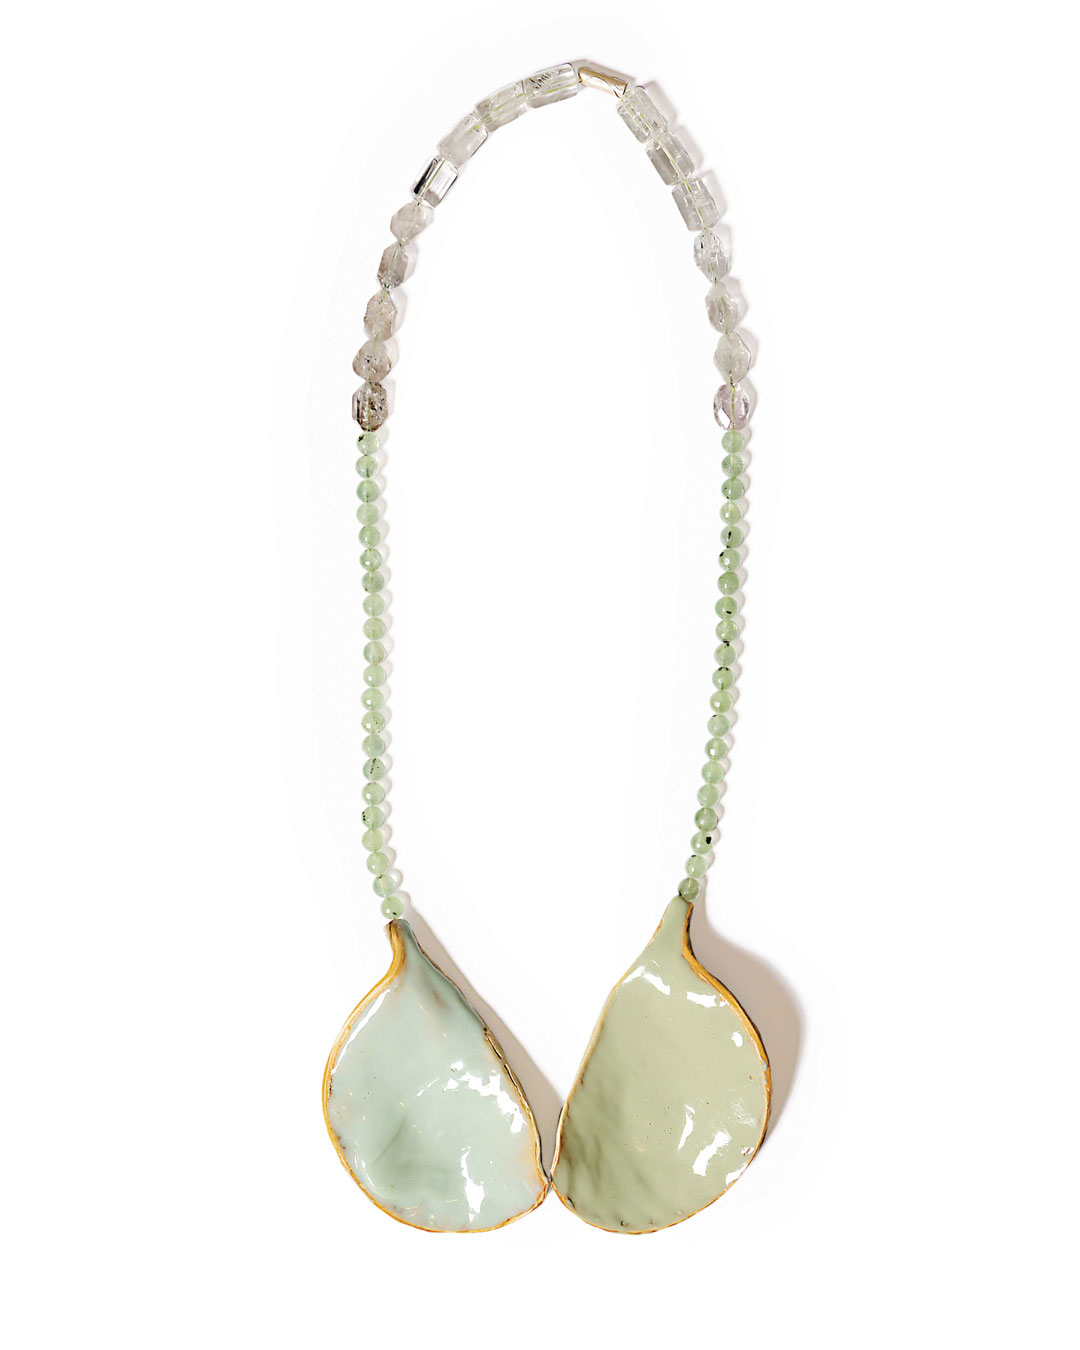 Margit Jäschke, untitled, 2012, necklace; wood, plastic, rock crystal, 480 x 155 x 35 mm, €2670